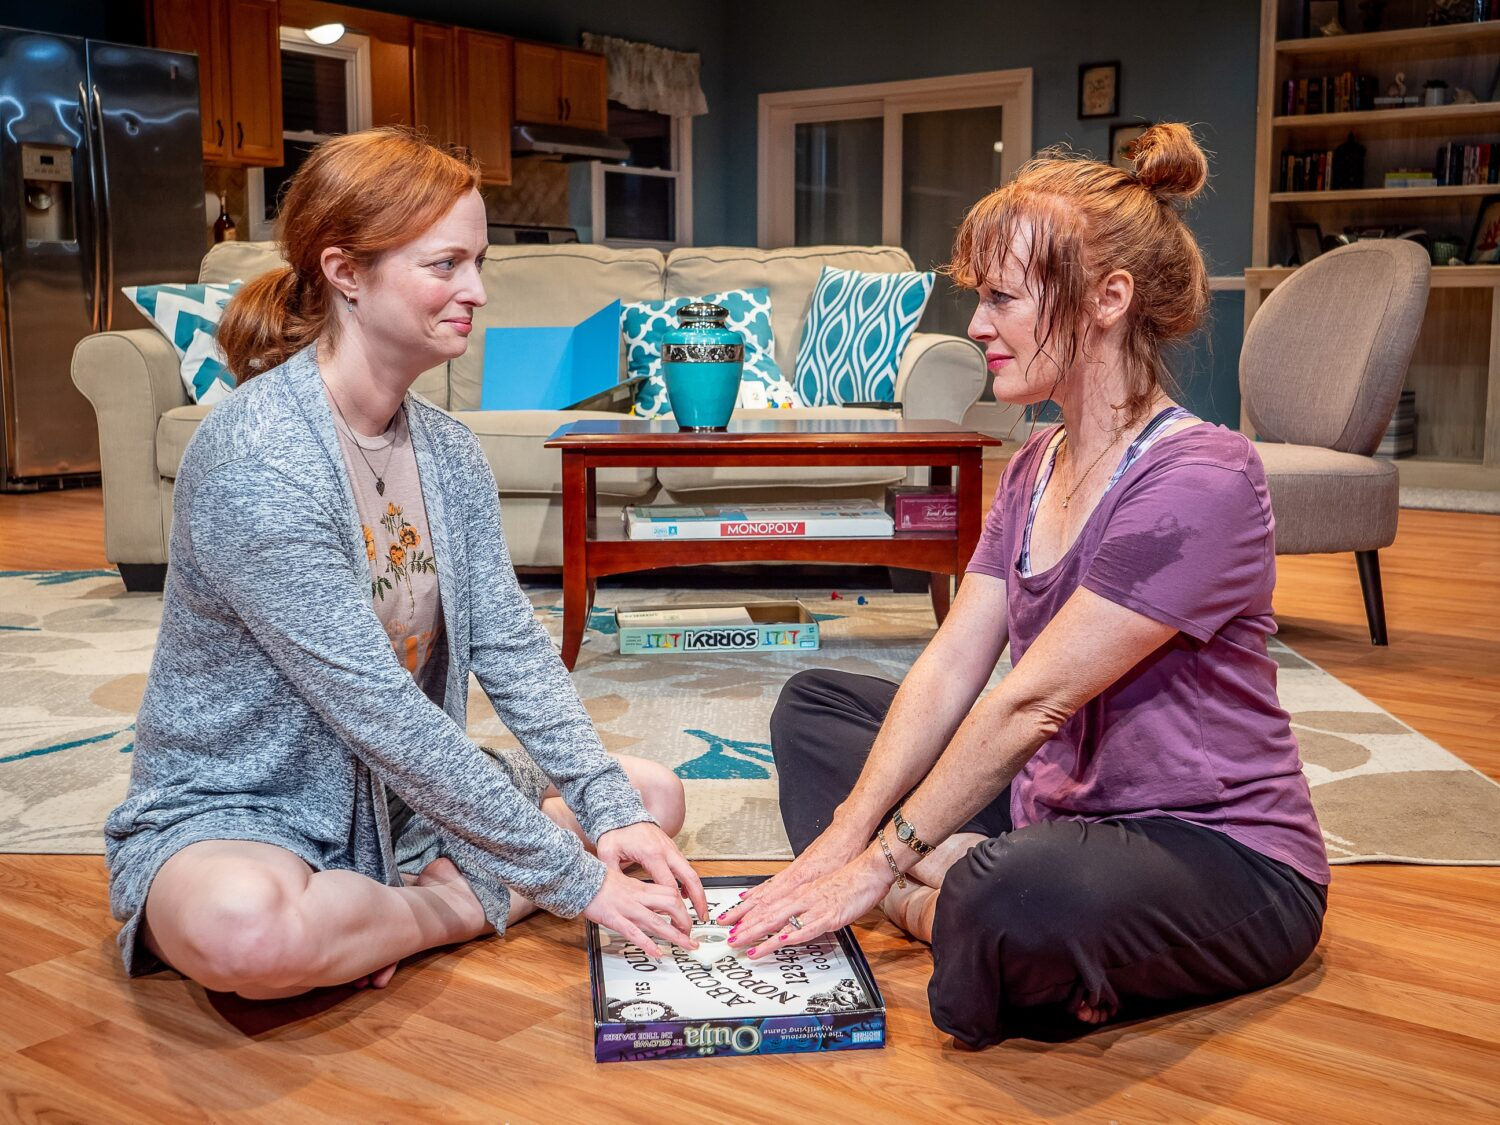 Kelley Rae O'Donnell as Maggie and Kathy McCafferty as Rosemary in the Premiere Stages production of The Wake by Tammy Ryan | Photo Credits Mike Peters